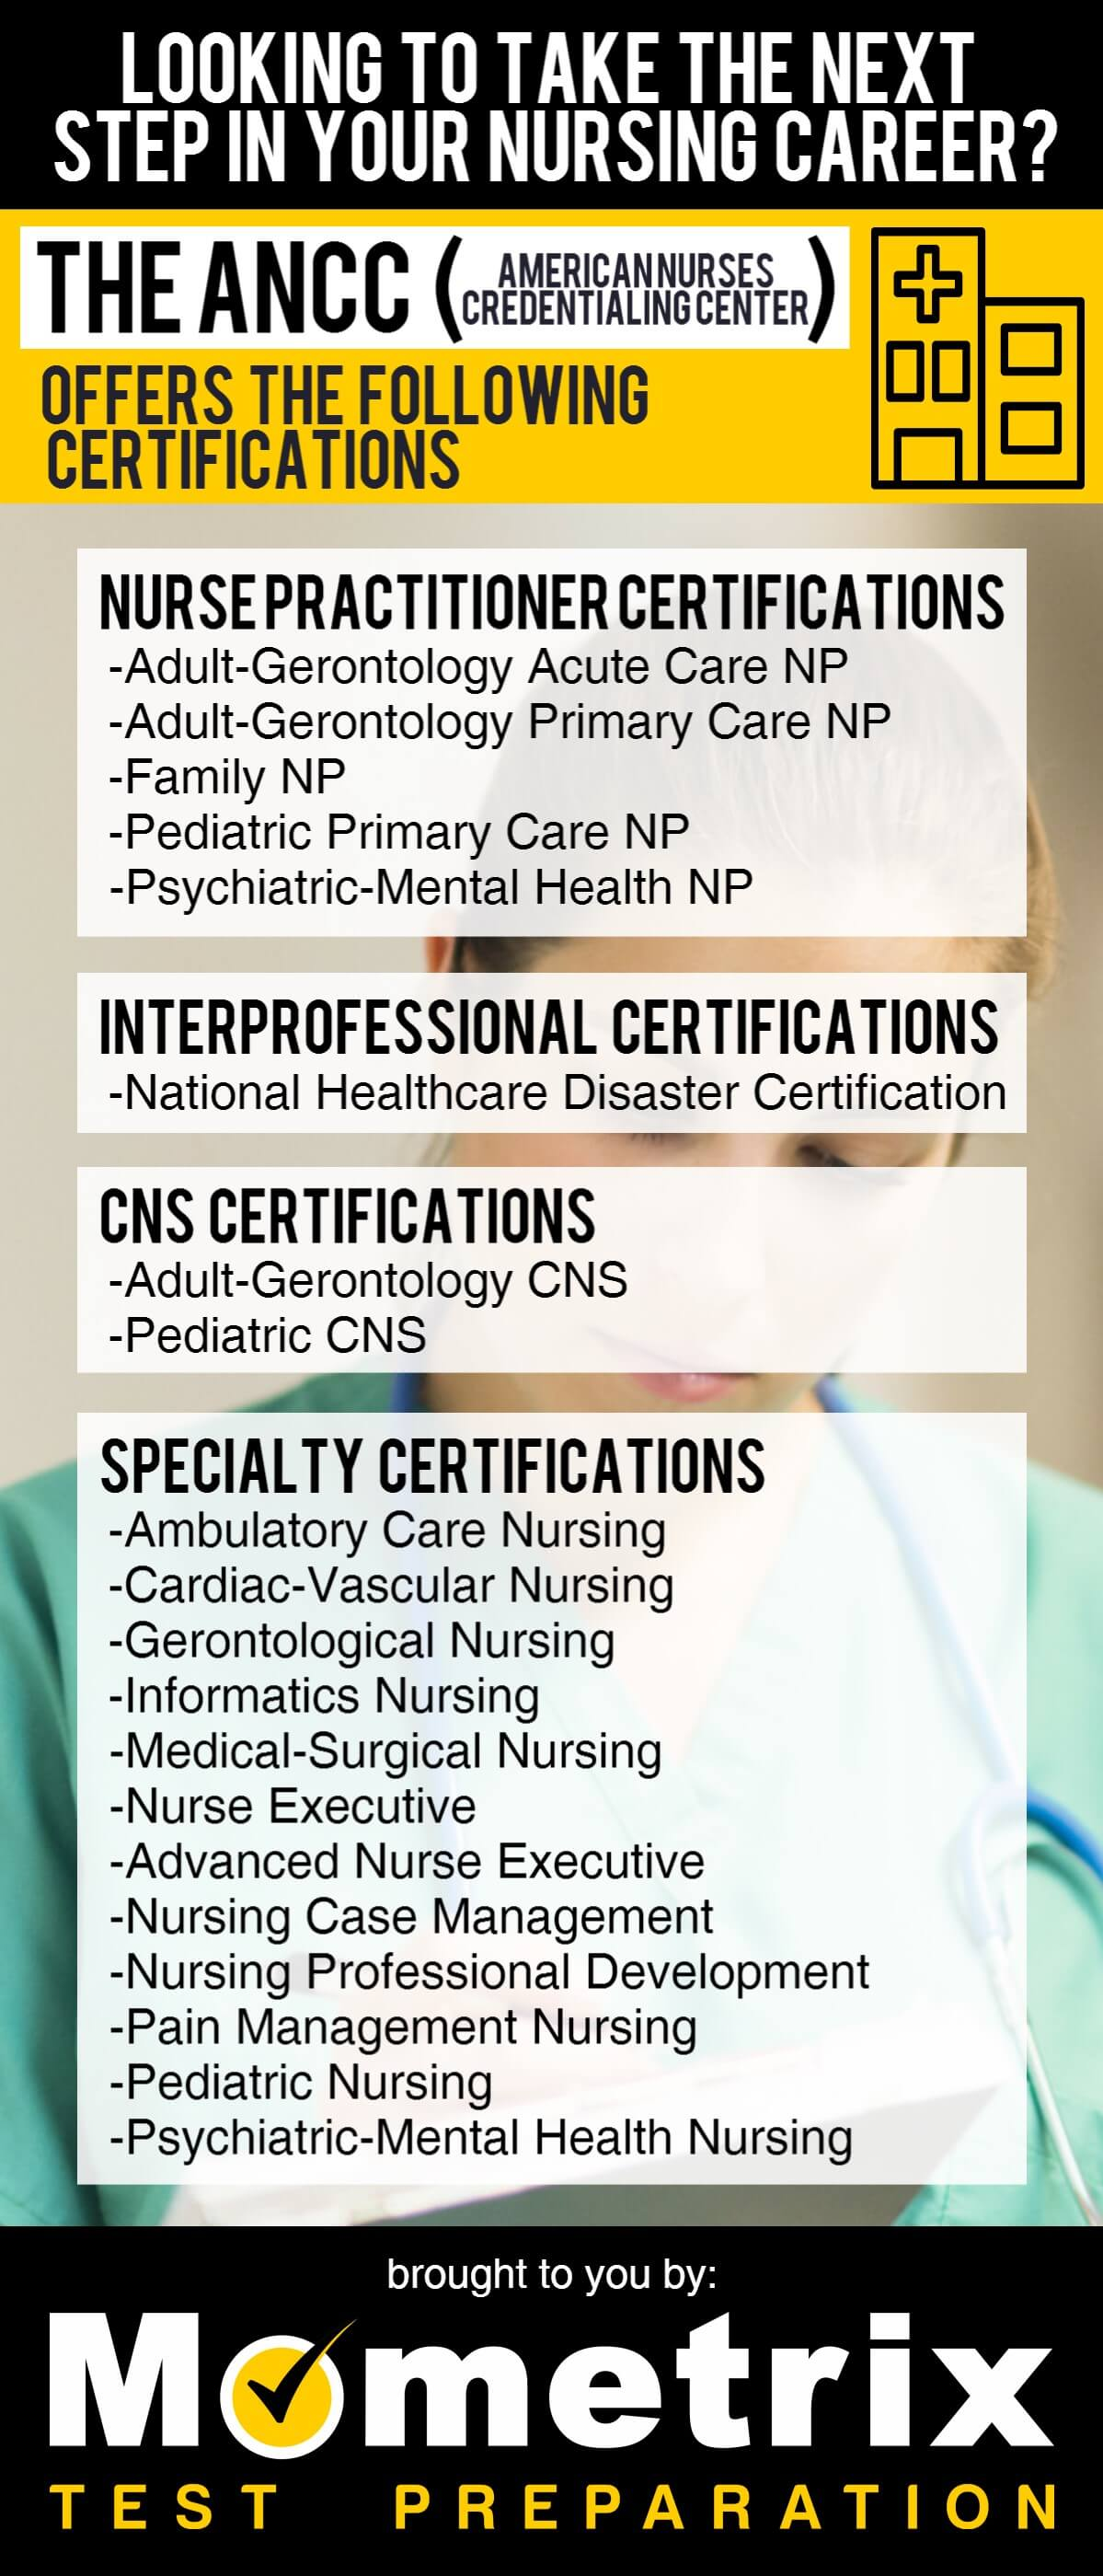 Infographic explaining what is on the ANCC Certification